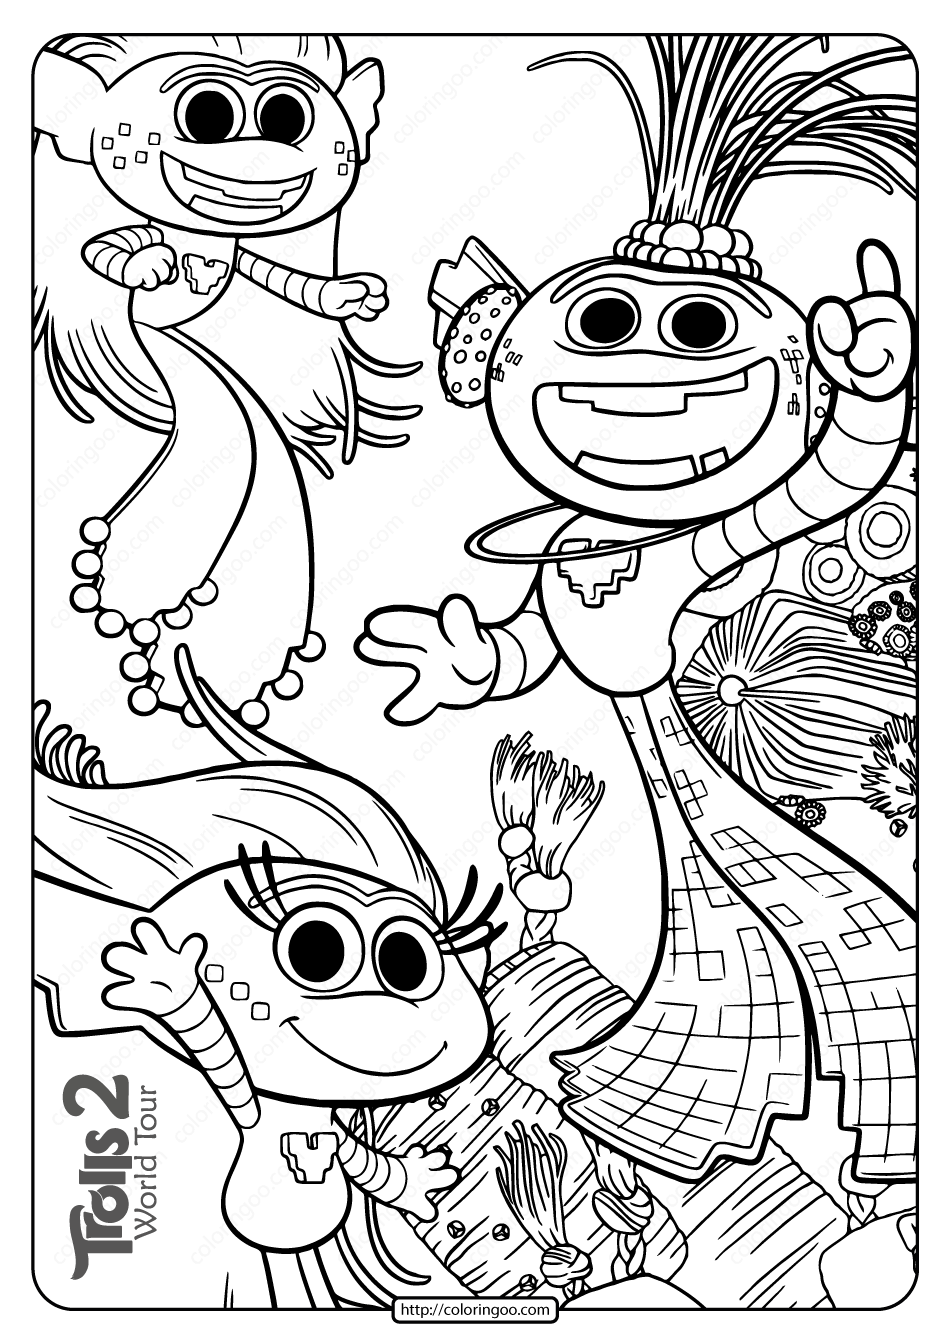 coloring page 2 free printable incredibles 2 coloring pages scribblefun page coloring 2